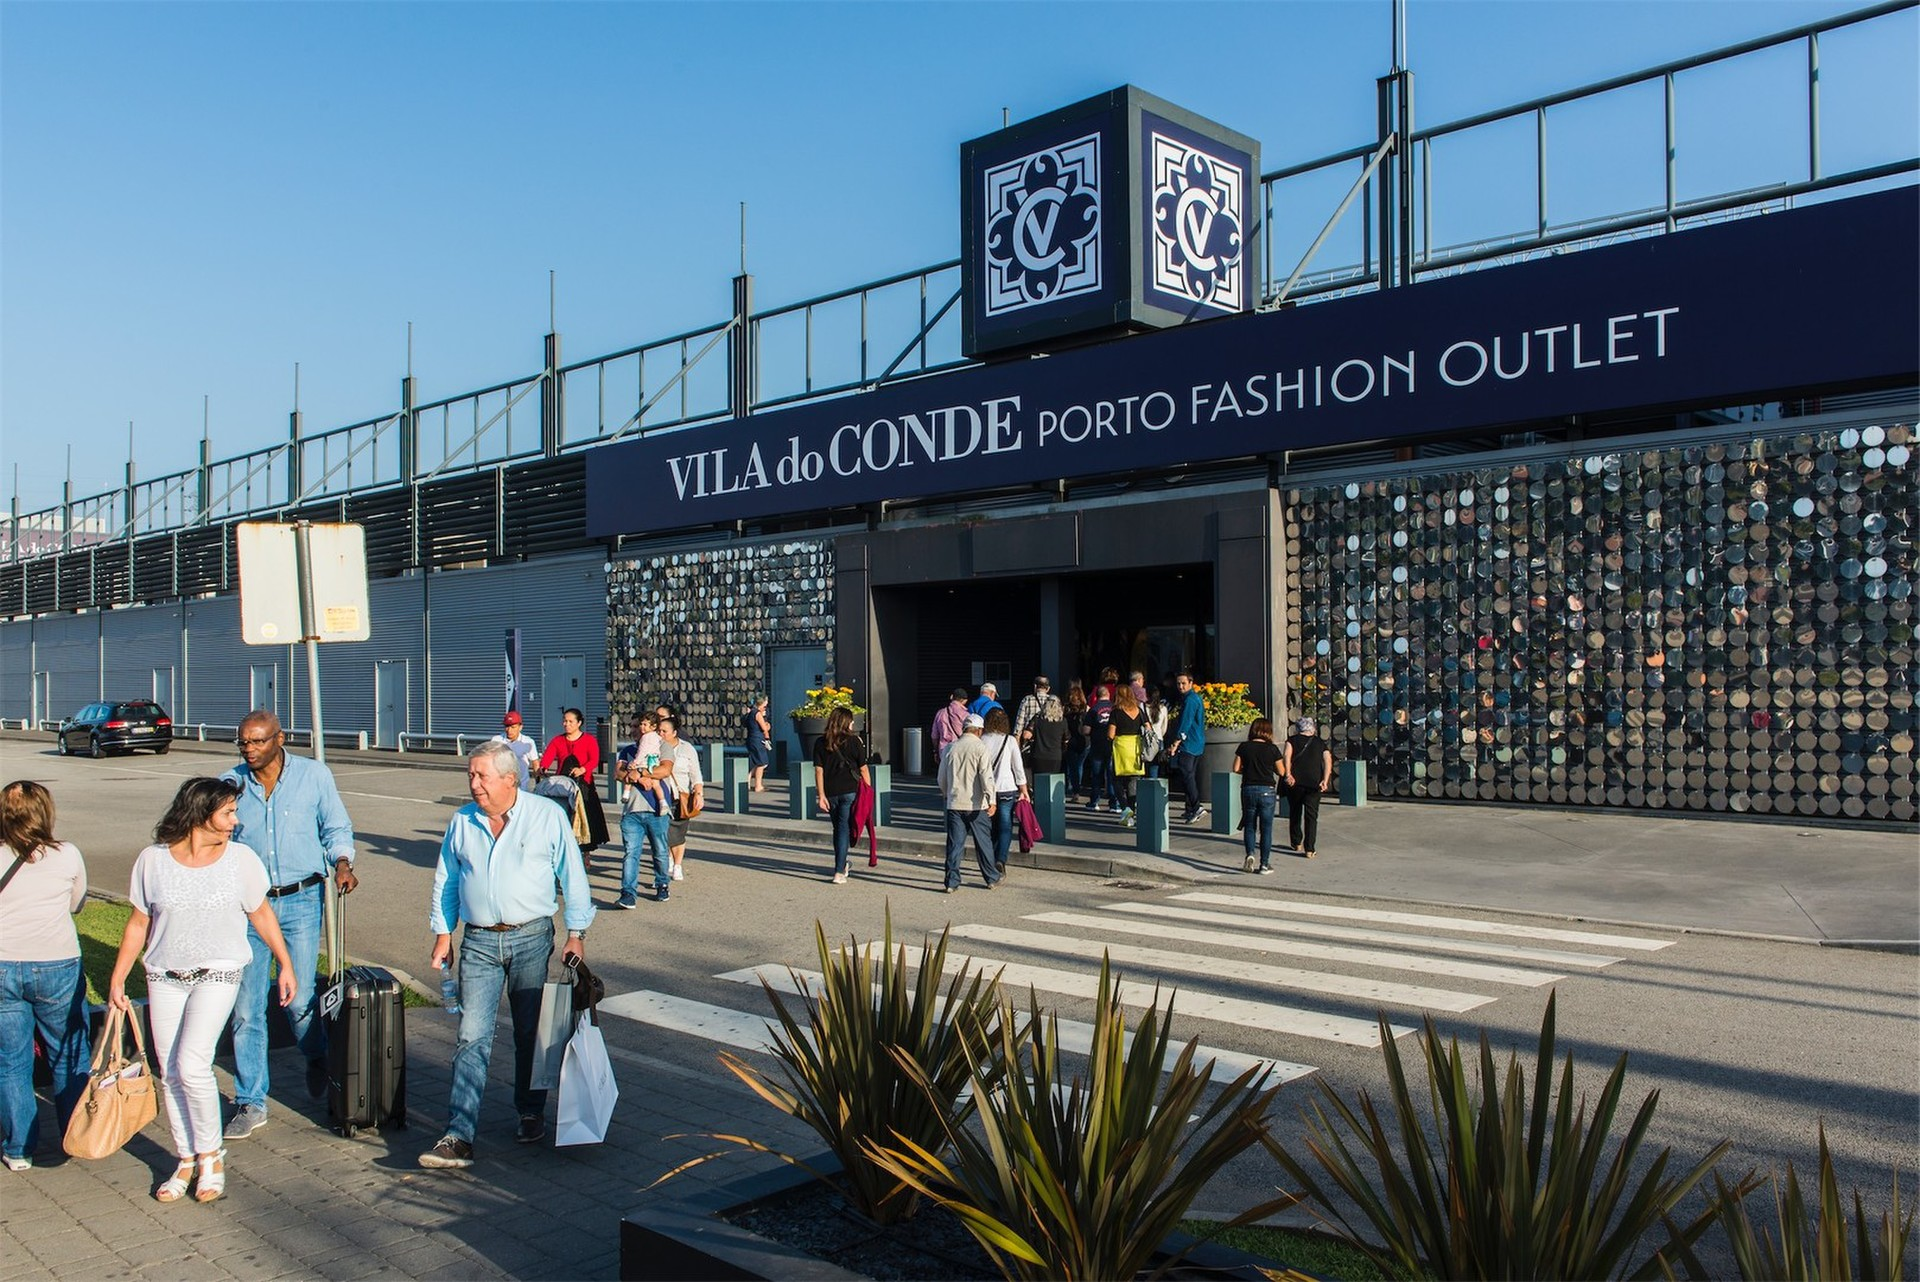 Vila do Conde Porto Fashion Outlet ATUALIZADO 2020 O que